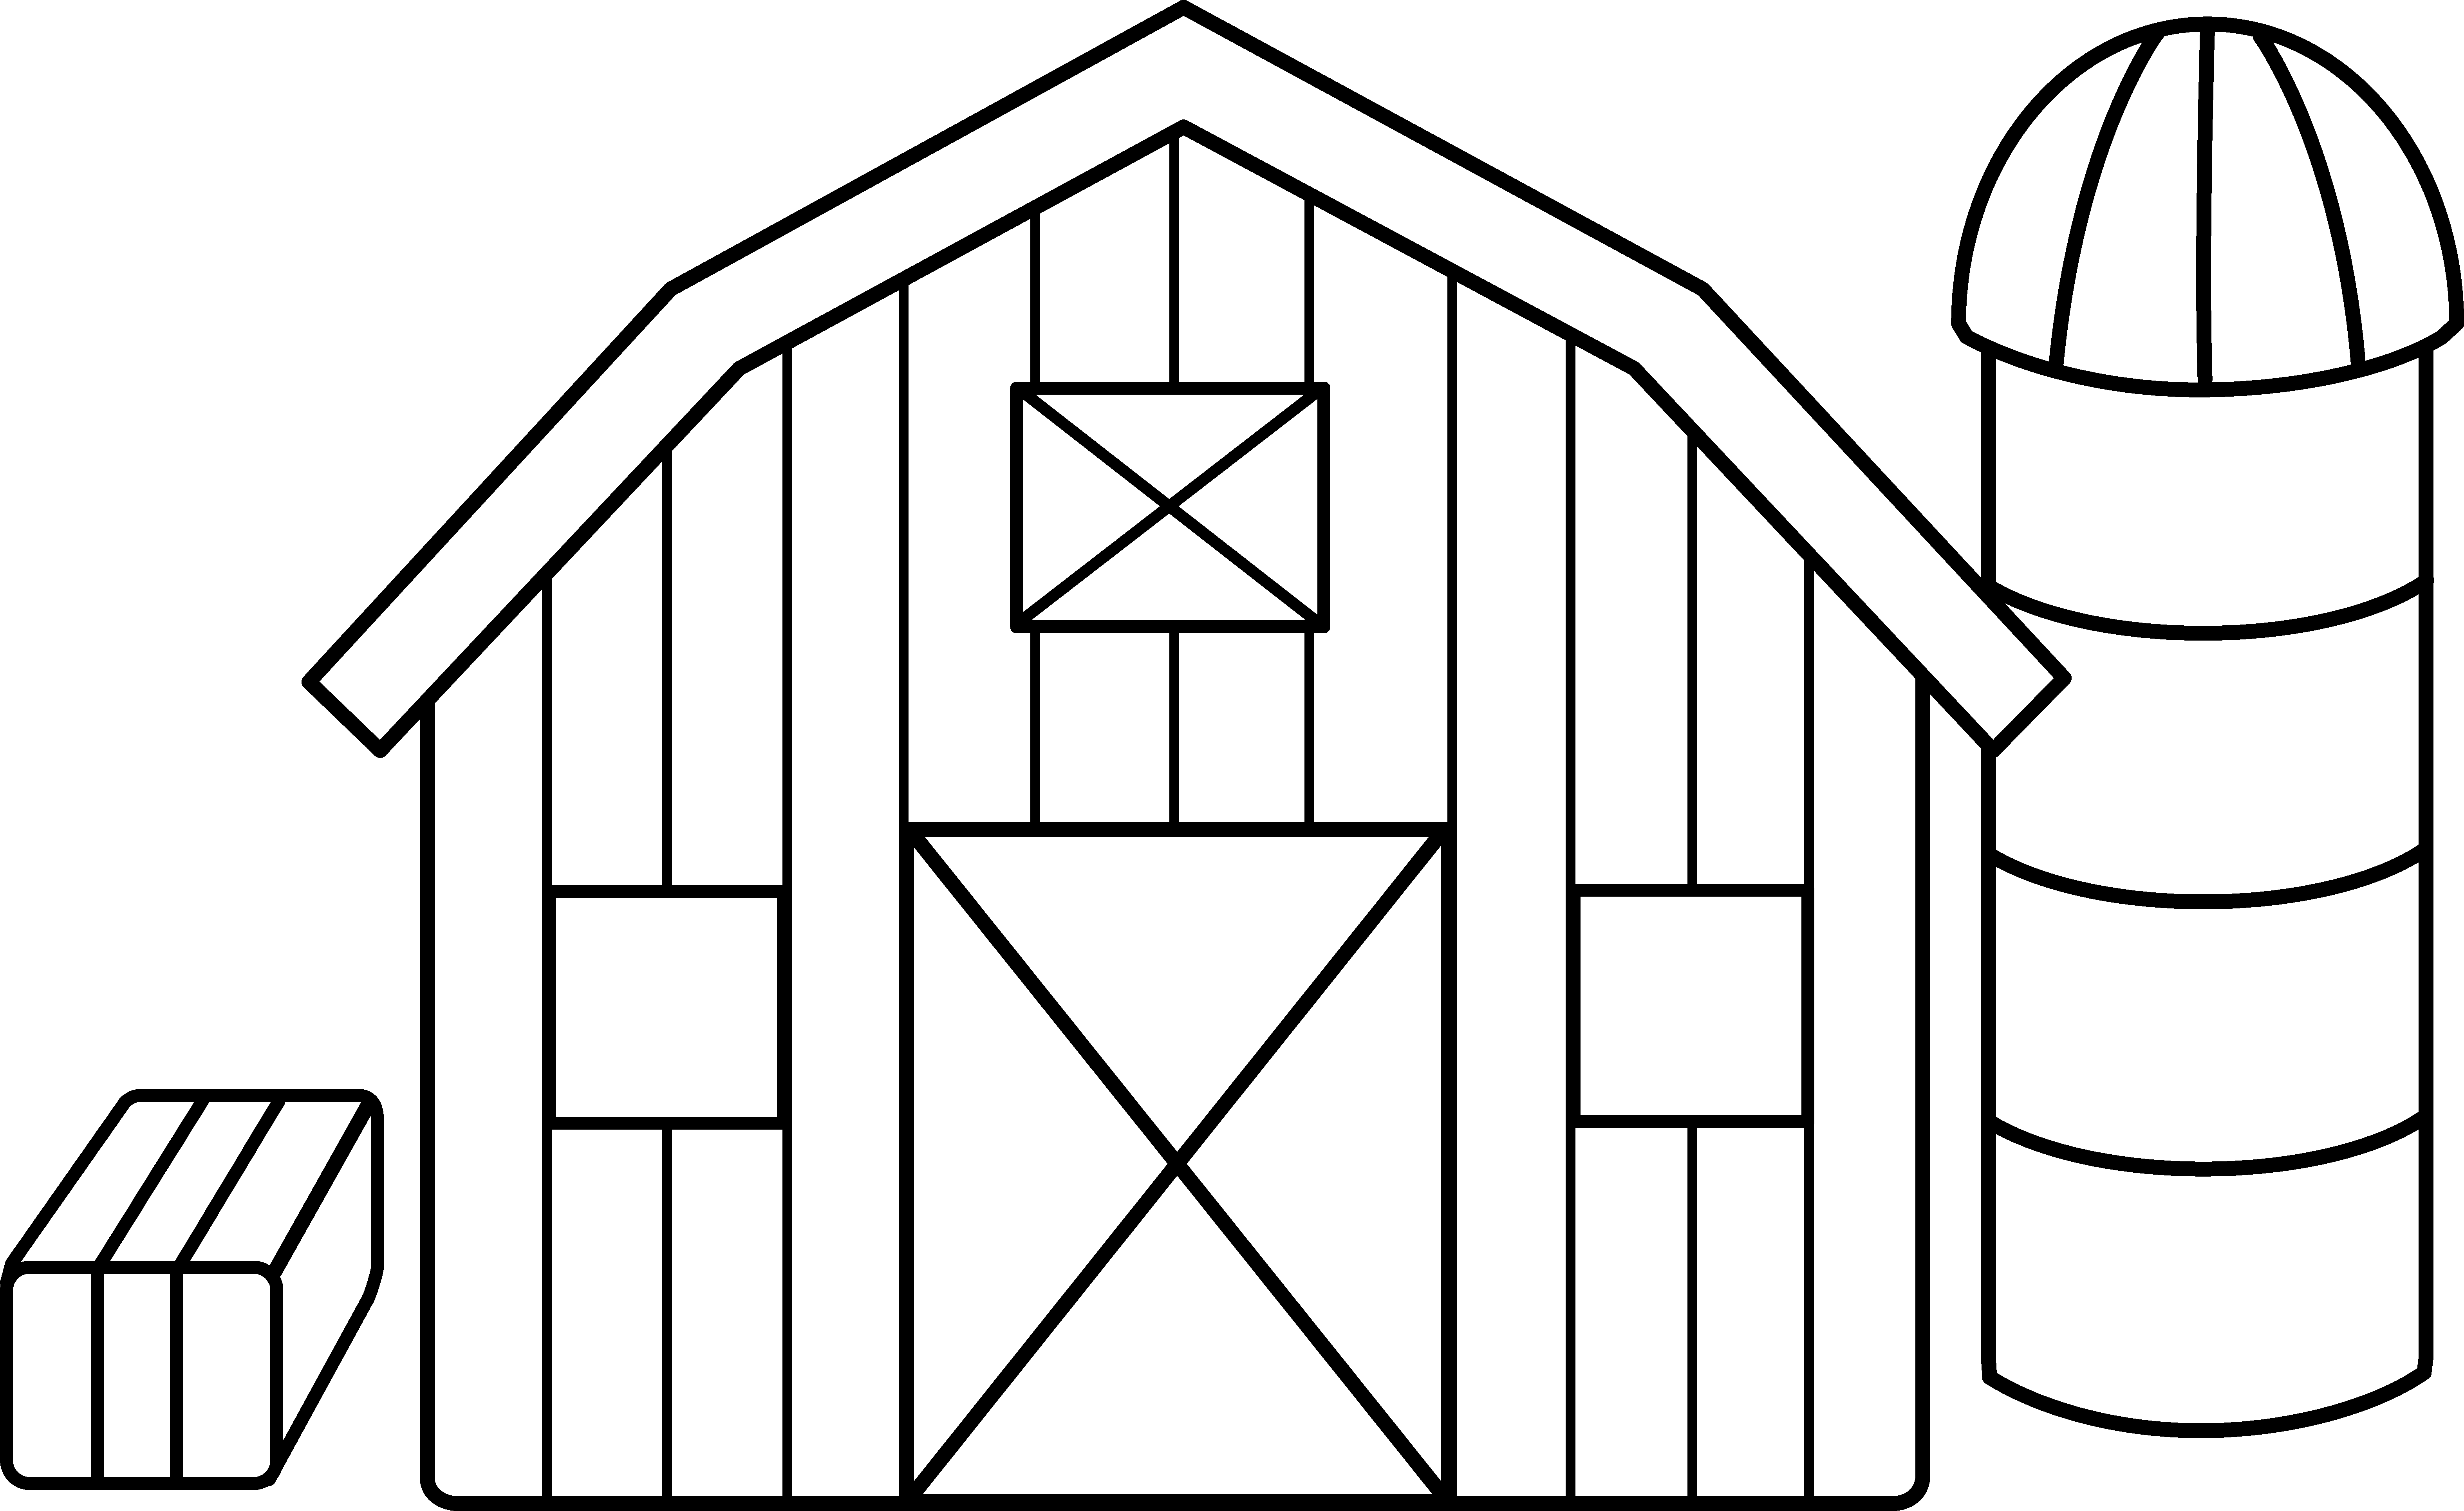 Farm coloring pages democraciaejustica. Farmhouse clipart country house